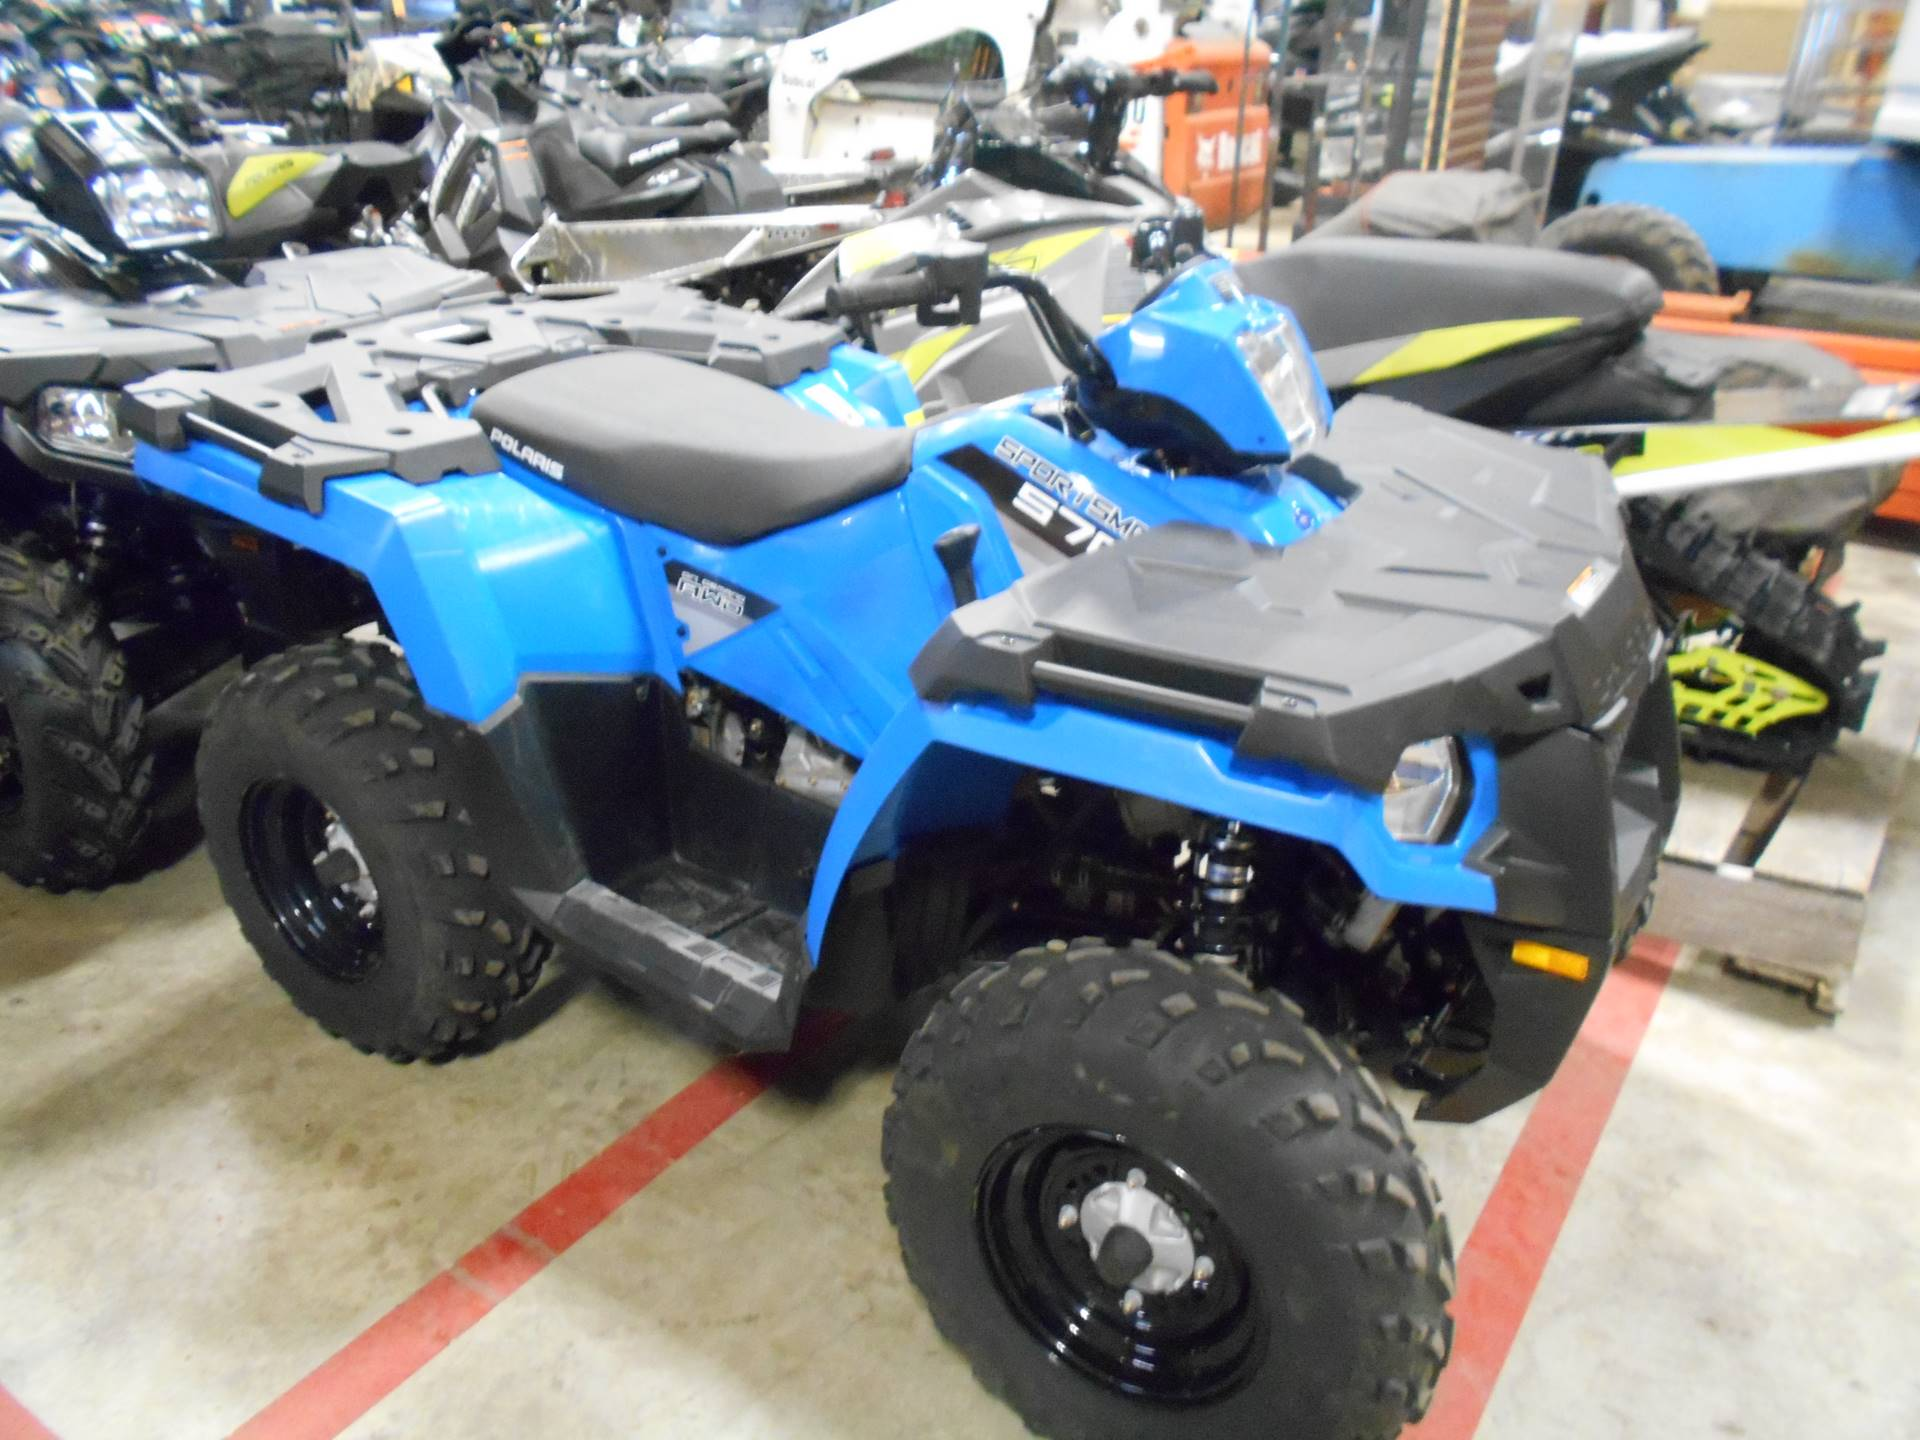 2016 Polaris Sportsman 570 Eps In Belvidere Illinois Photo 1